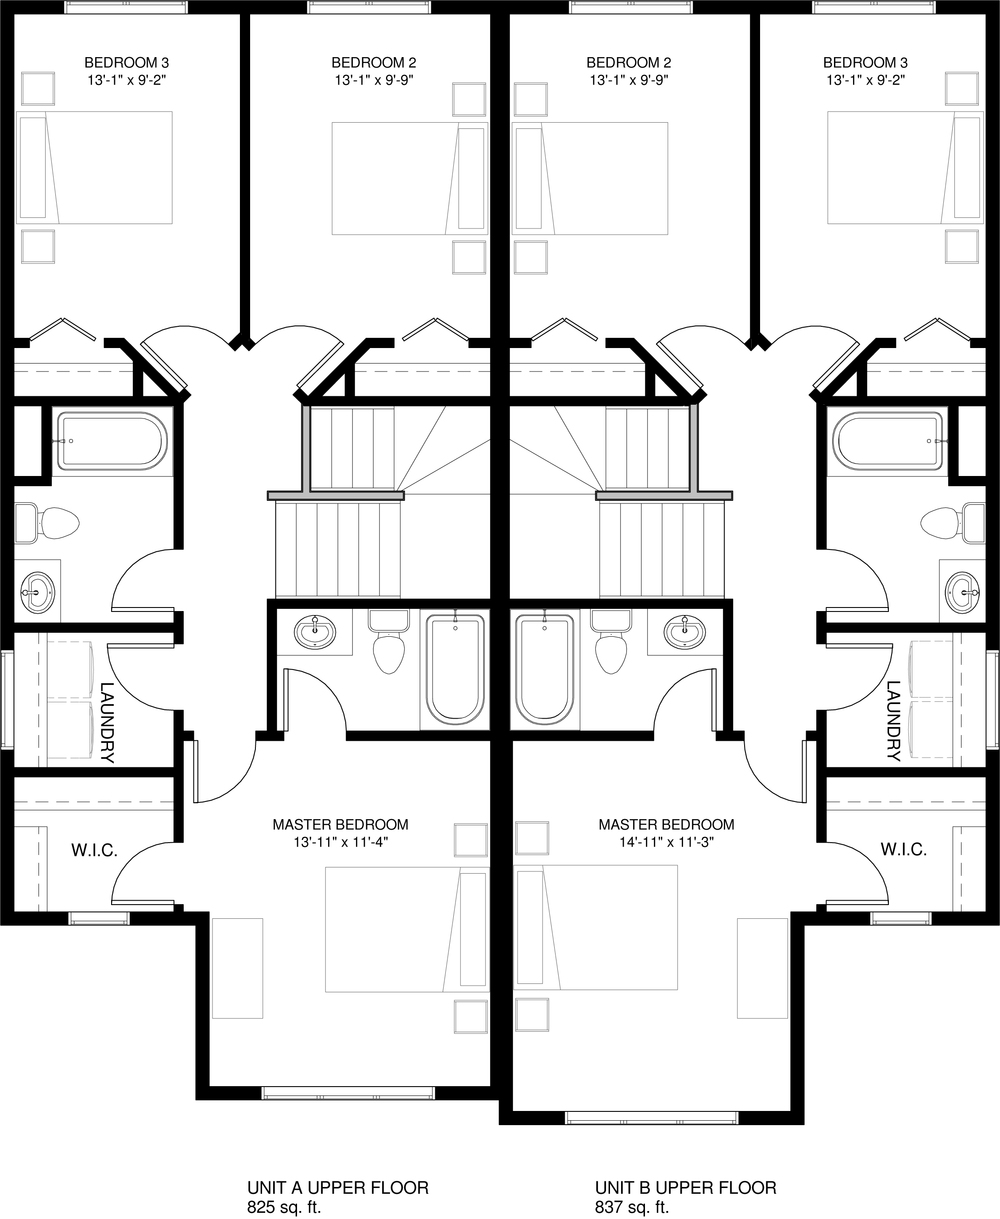 Upper Floor     Unit A 825 sq ft  Unit B 837 sq ft